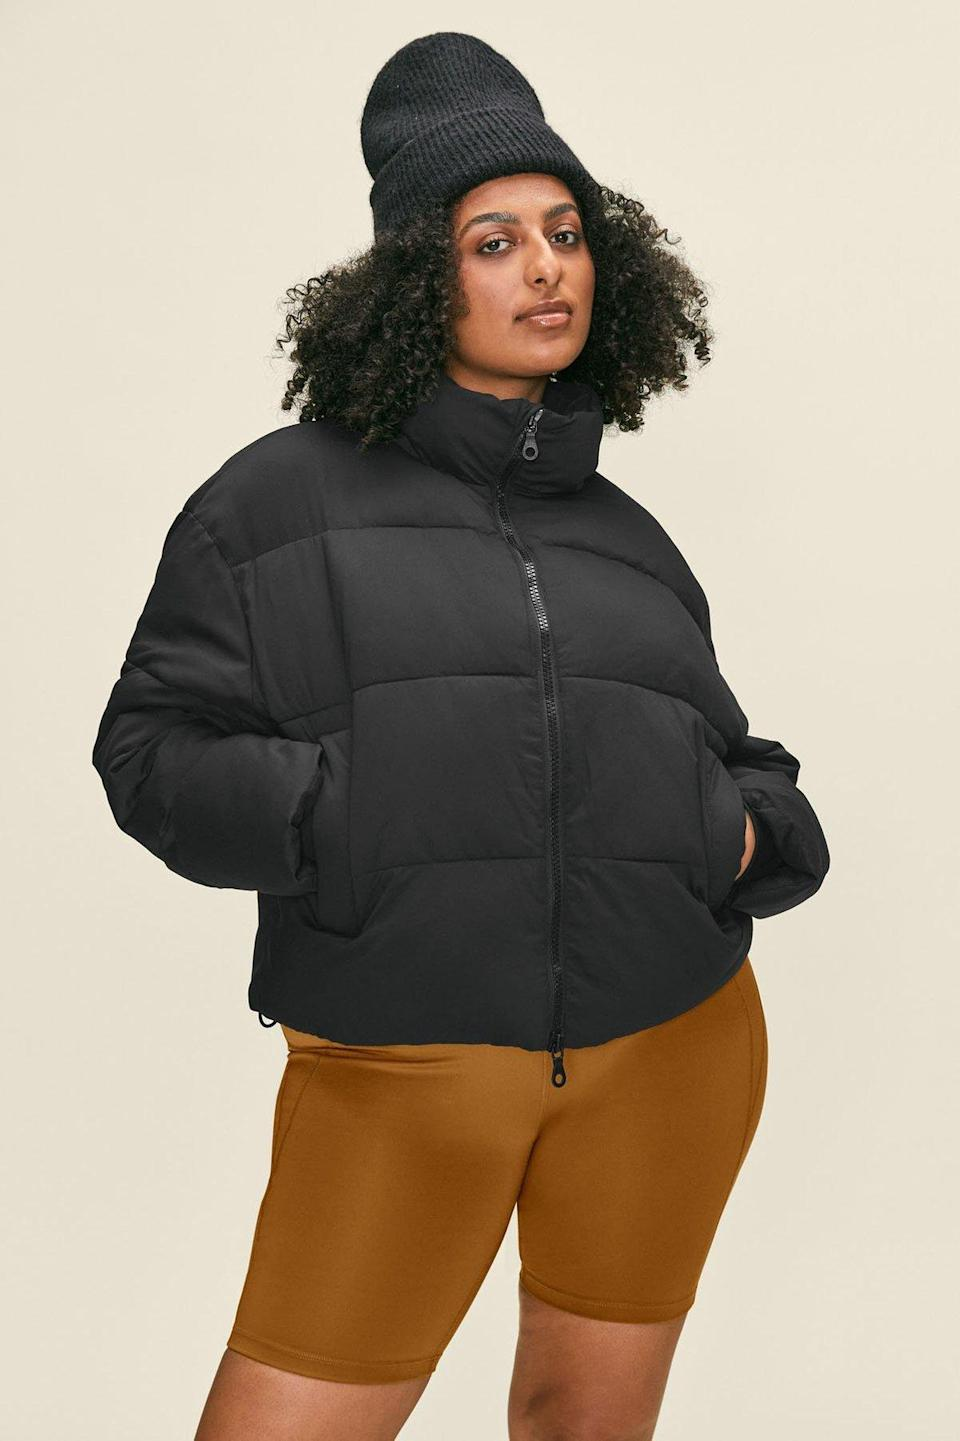 """Because everyone needs a cute <a href=""""https://www.glamour.com/story/how-to-wear-puffer-jacket-fall-outfits?mbid=synd_yahoo_rss"""" rel=""""nofollow noopener"""" target=""""_blank"""" data-ylk=""""slk:puffer coat"""" class=""""link rapid-noclick-resp"""">puffer coat</a> for winter, and this one is light, warm, and sustainable. $198, Girlfriend Collective. <a href=""""https://www.girlfriend.com/products/black-crop-puffer"""" rel=""""nofollow noopener"""" target=""""_blank"""" data-ylk=""""slk:Get it now!"""" class=""""link rapid-noclick-resp"""">Get it now!</a>"""